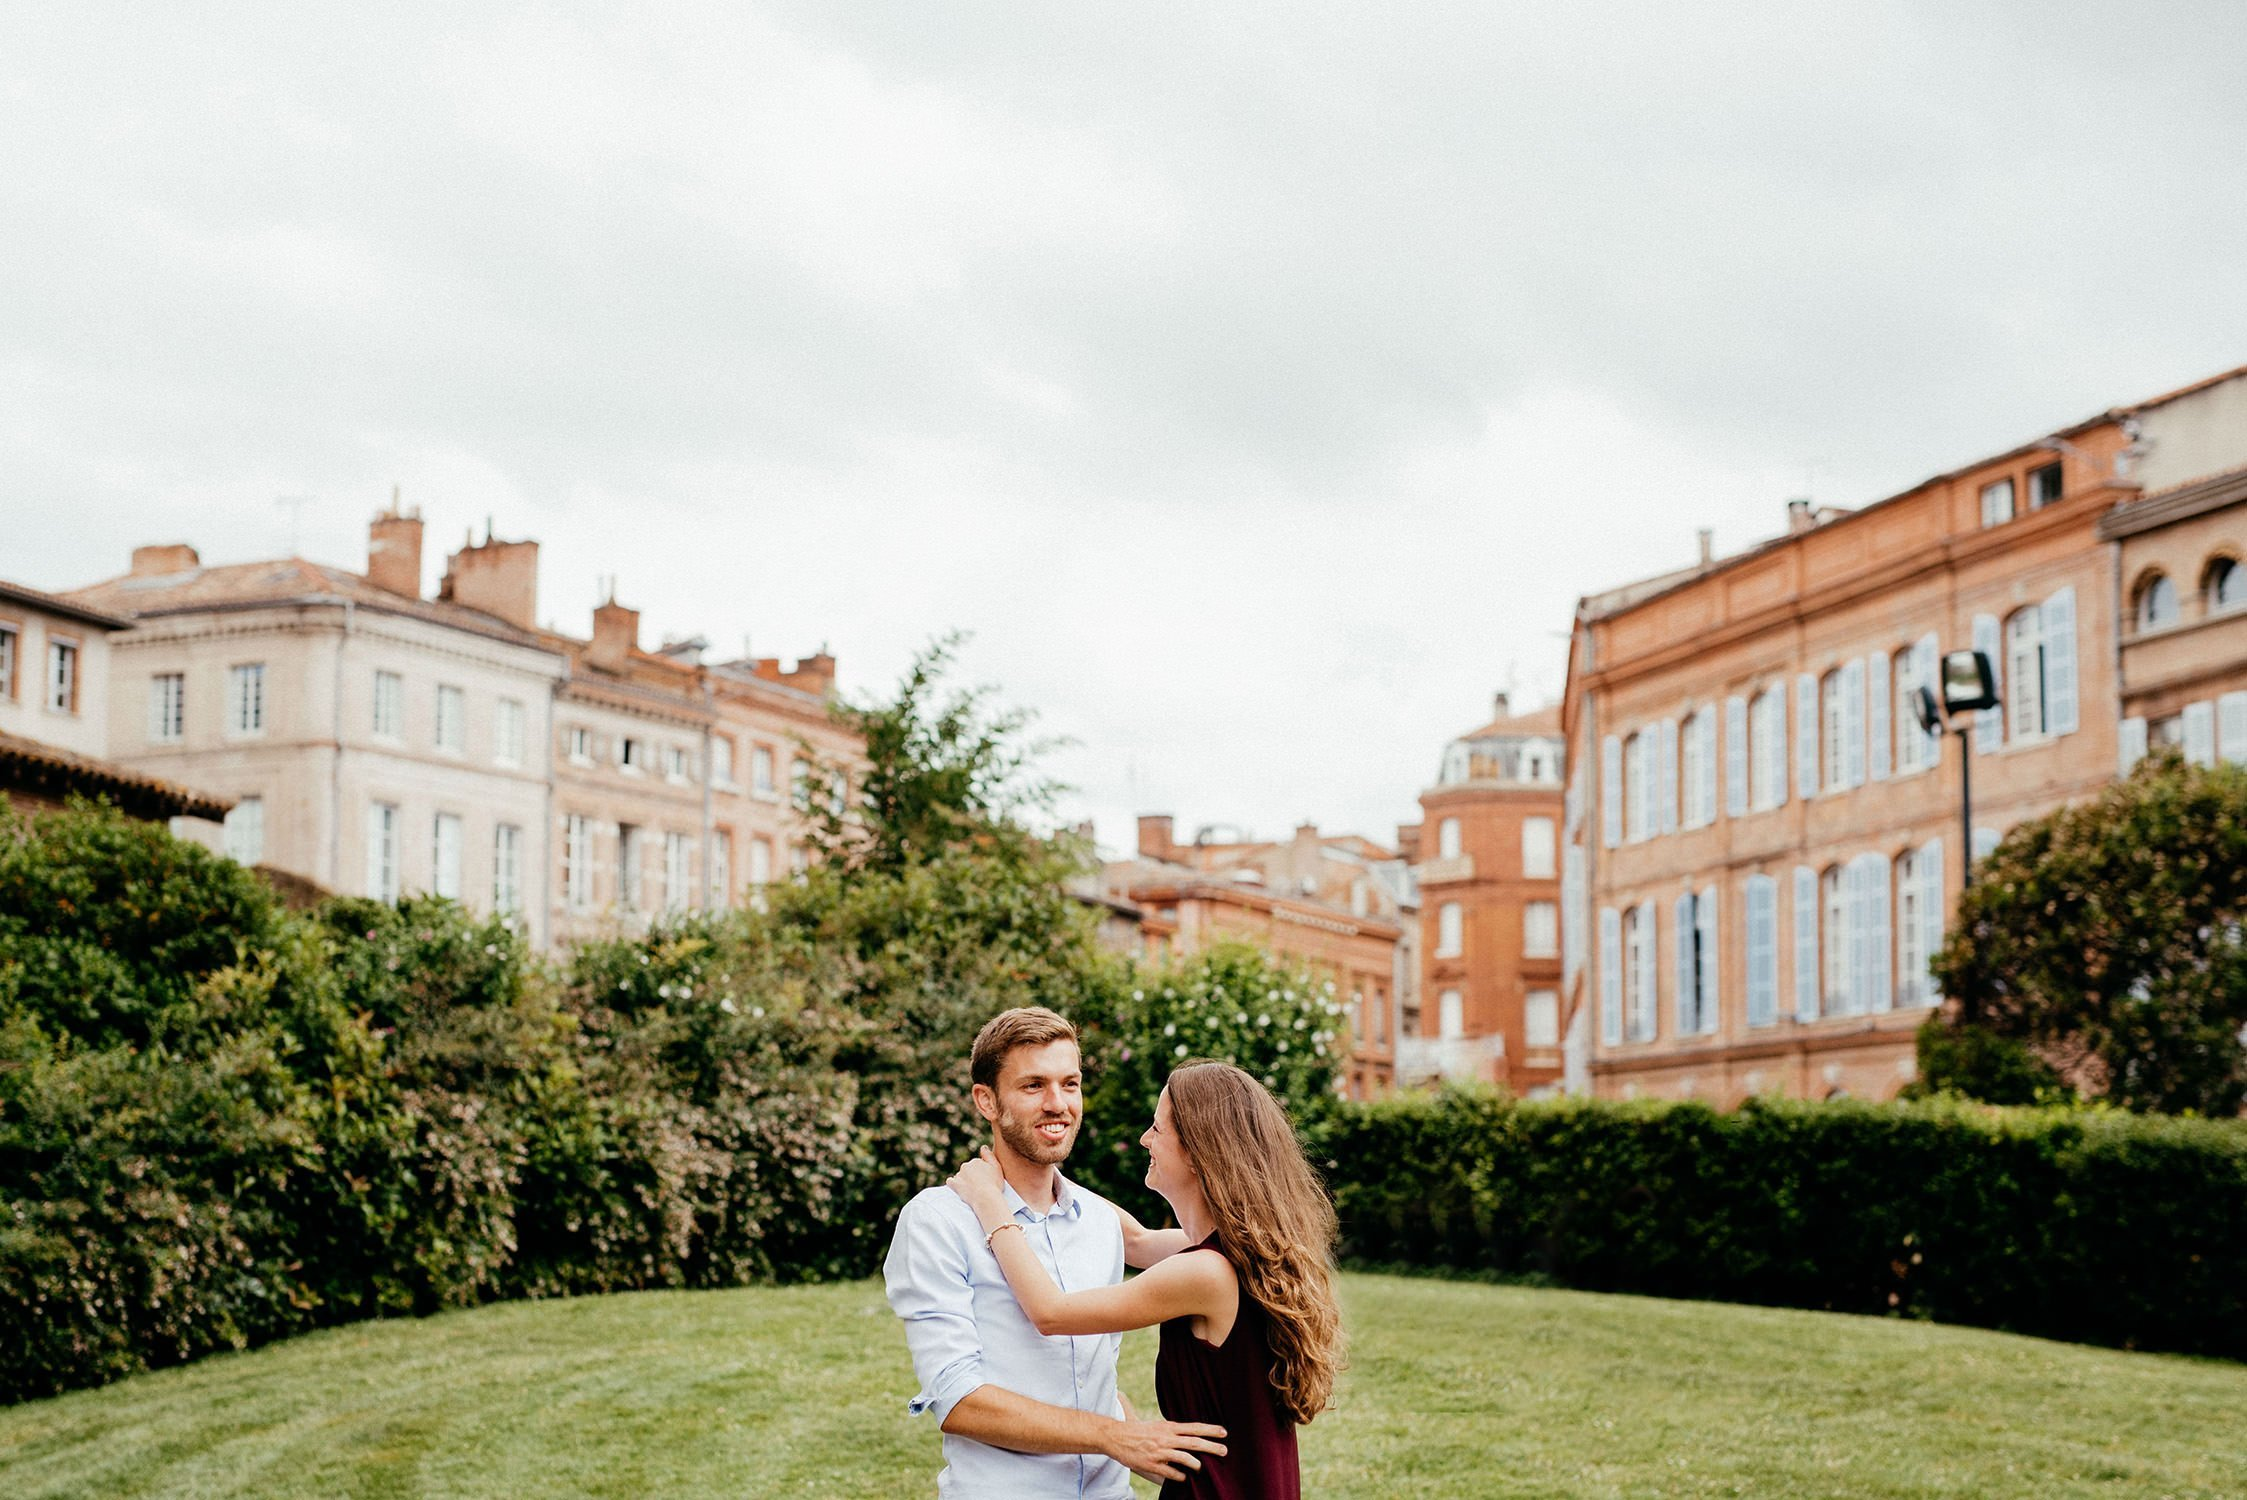 Engagement a Toulouse. Servizio Prematrimoniale a Tolosa. Luisa Basso Wedding Photographer. Italian Wedding photographer